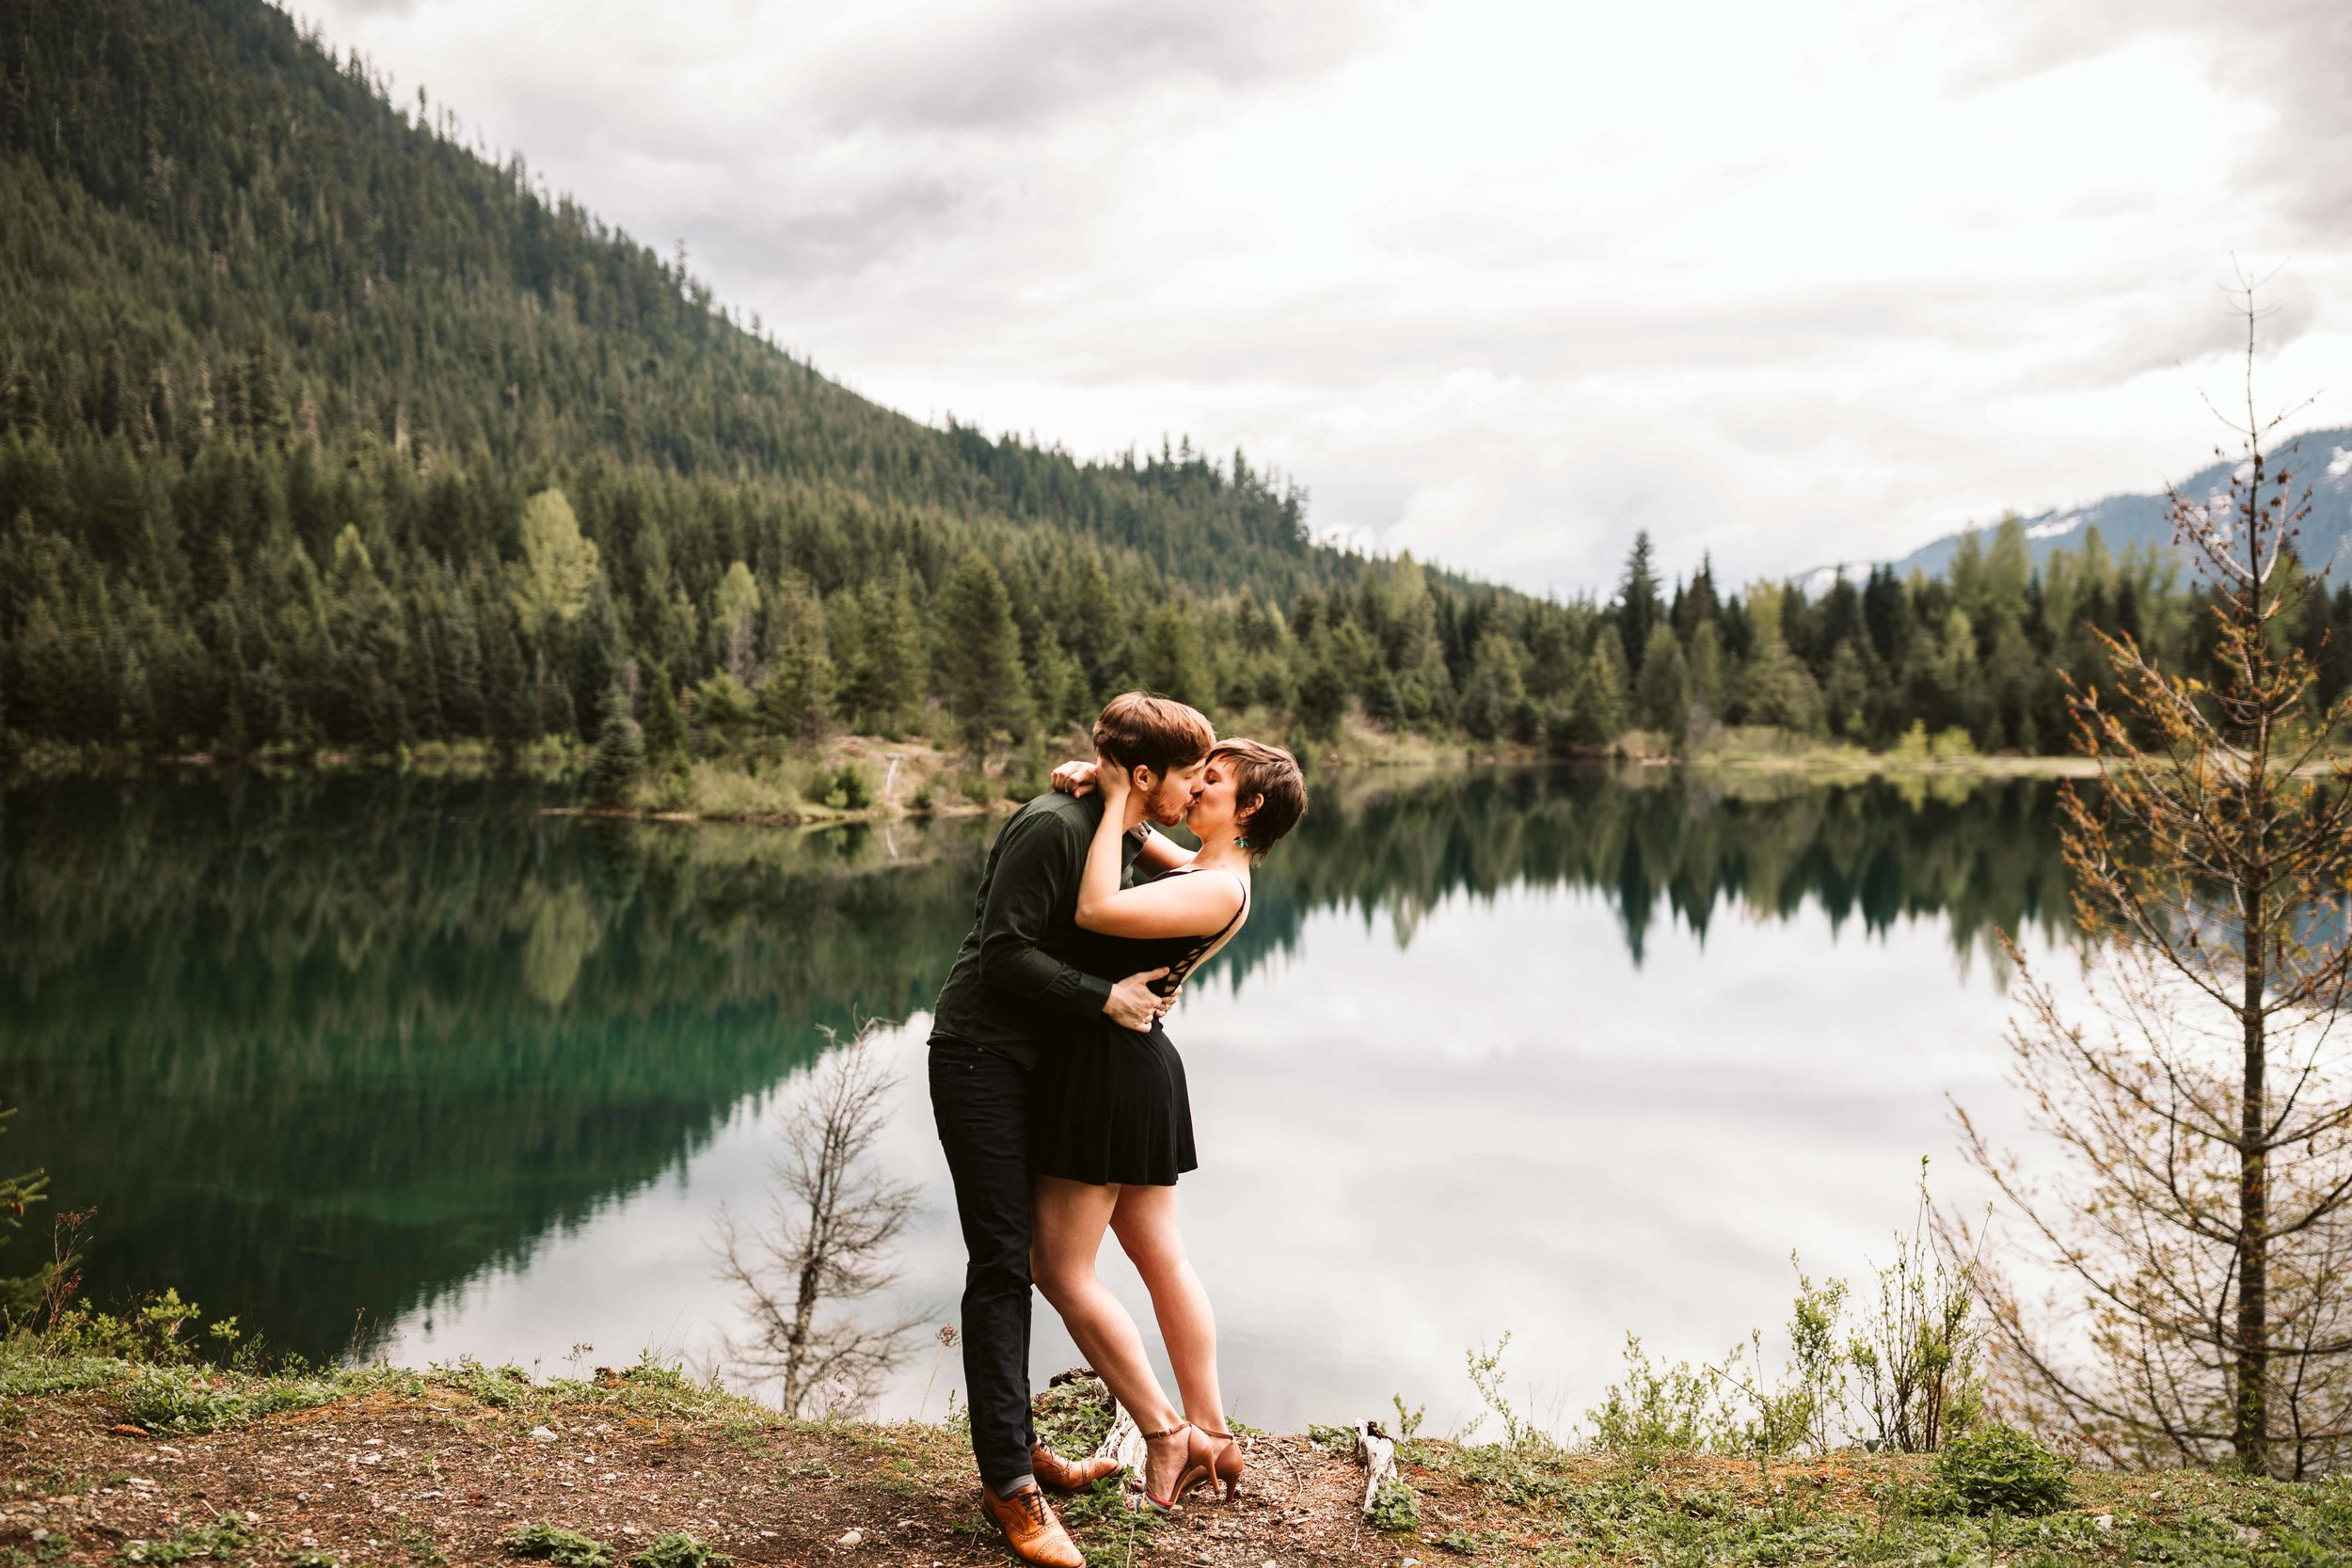 gold-creek-pond-trail-engagement-31.jpg